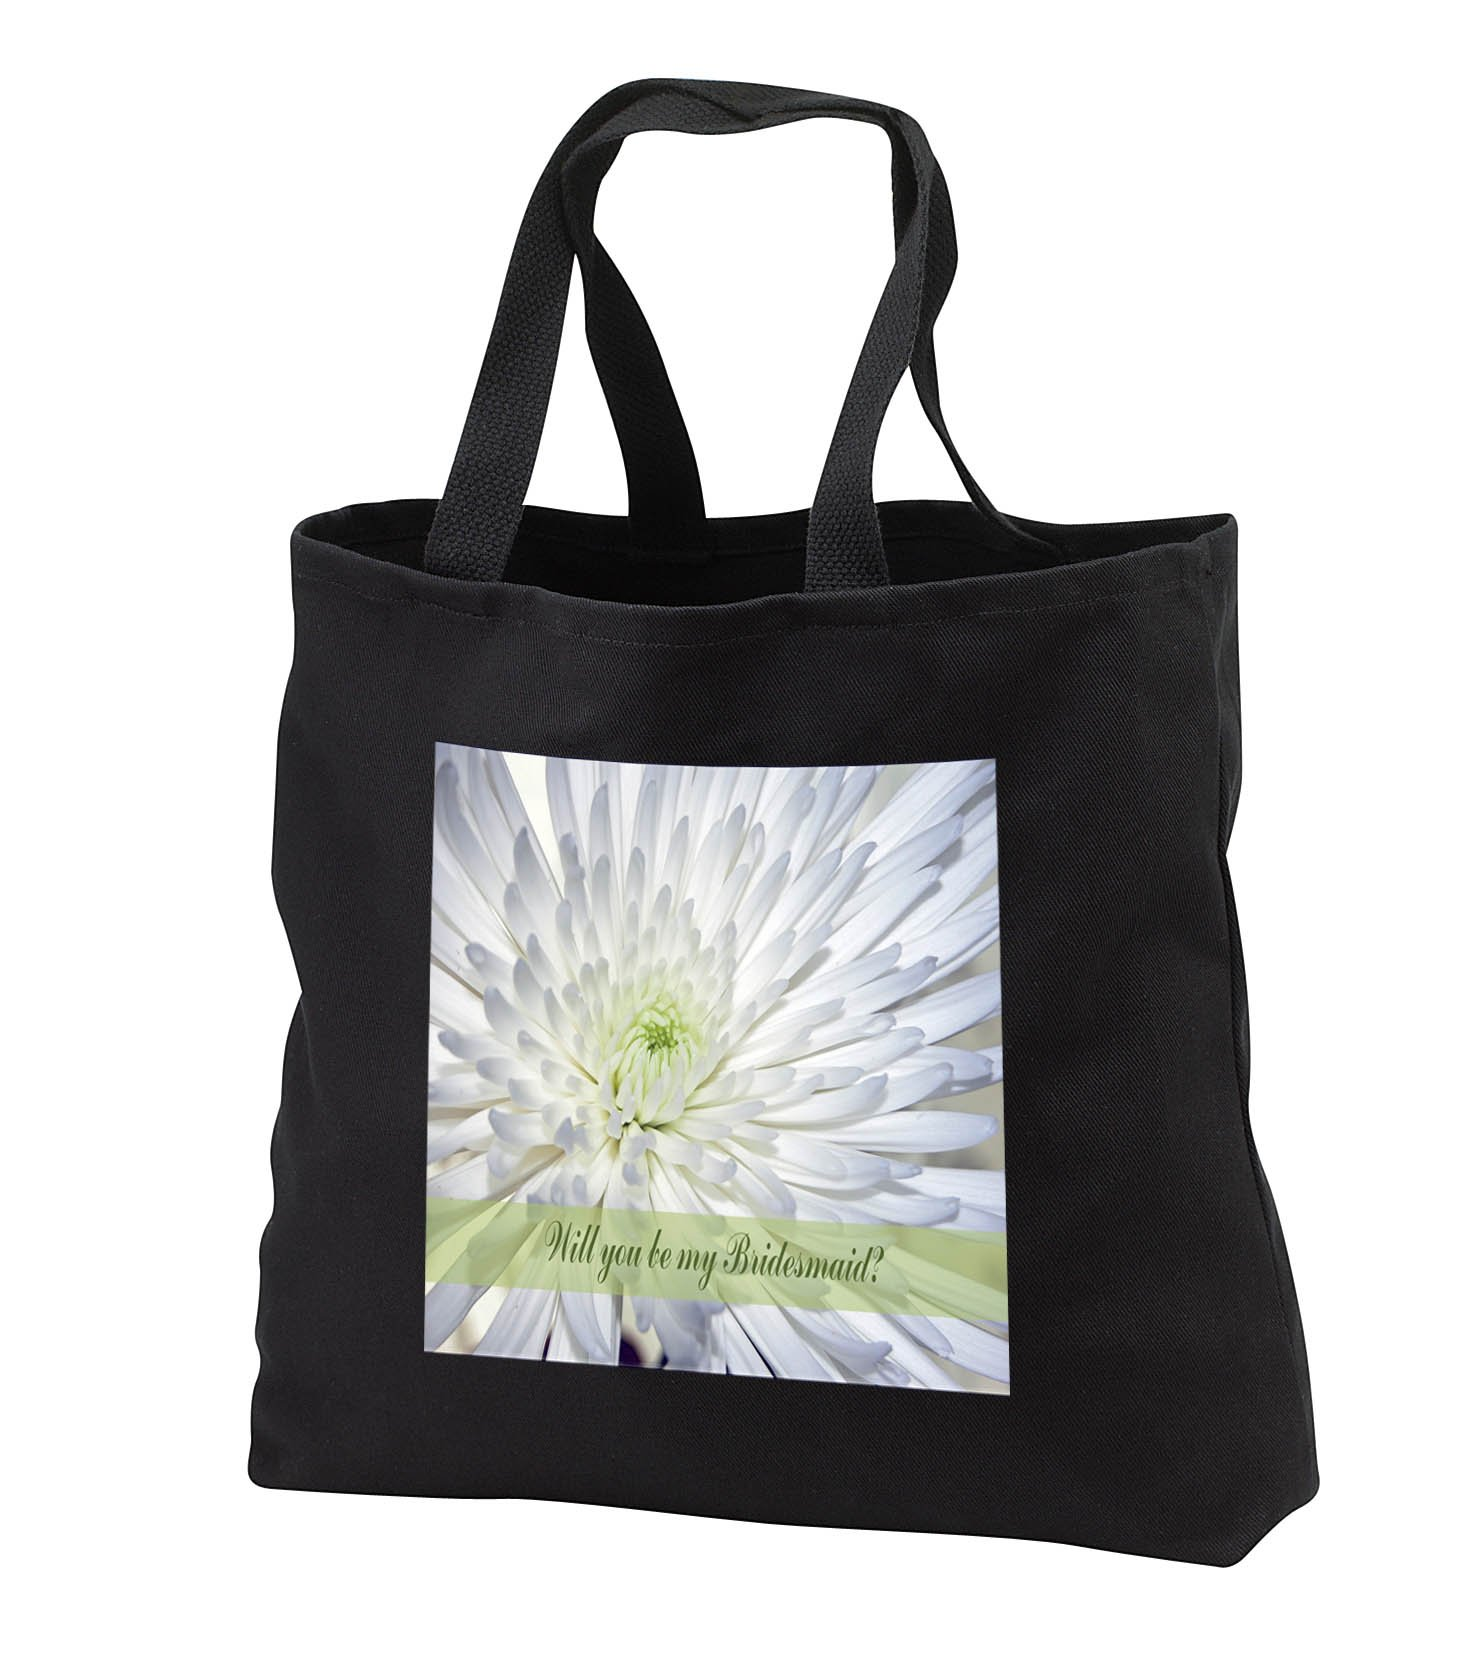 Beverly Turner Wedding Bridal Party Design - Will you be my Bridesmaid, Chrysanthemum, White and Green - Tote Bags - Black Tote Bag JUMBO 20w x 15h x 5d (tb_282203_3)